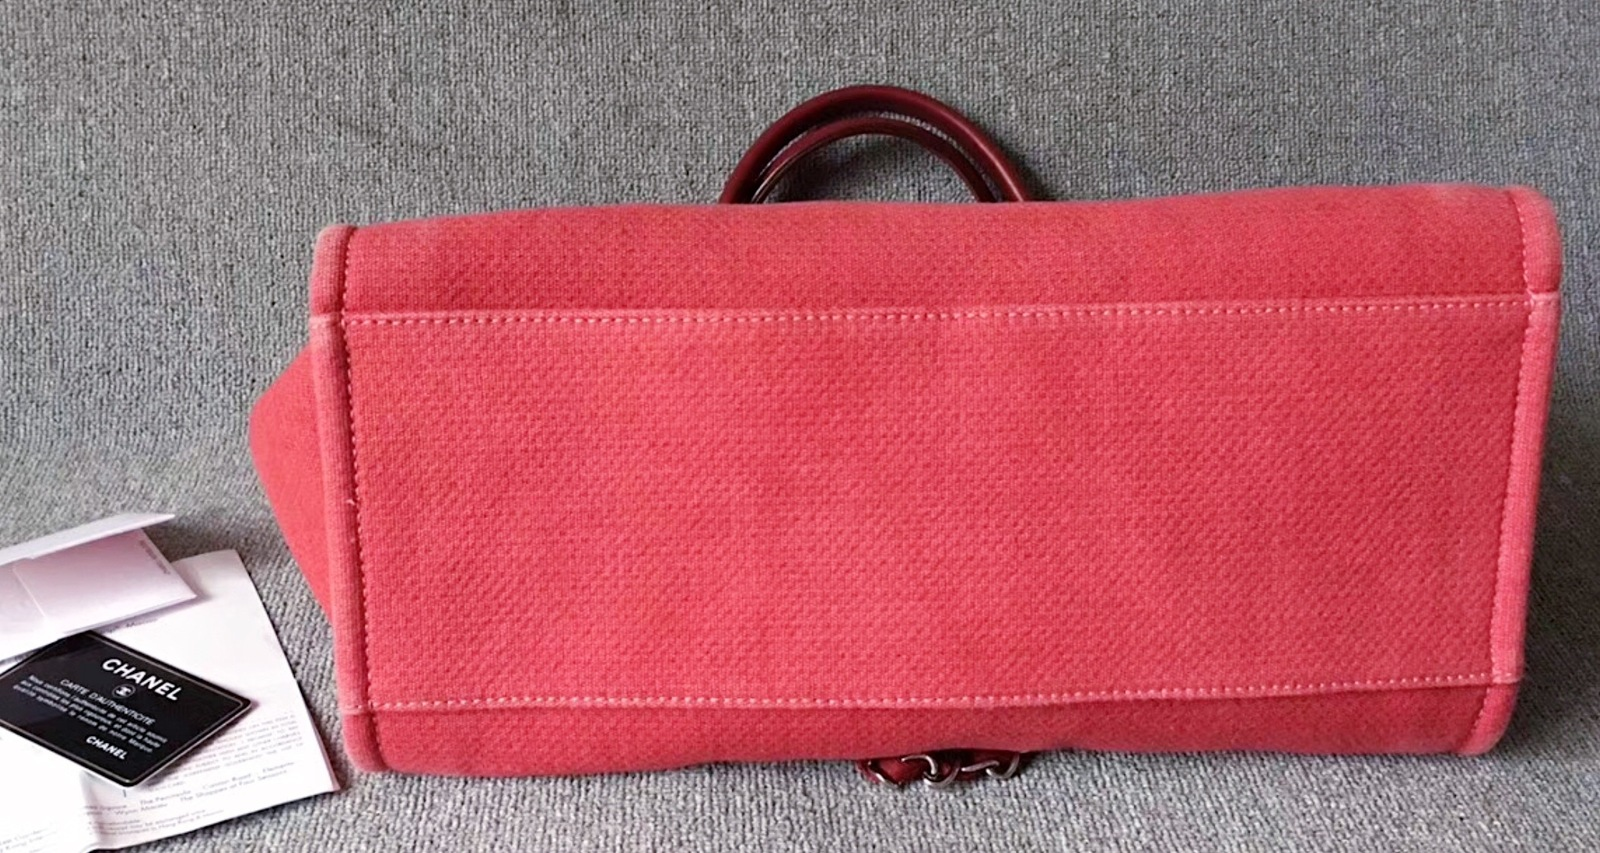 030dee83de2b AUTHENTIC CHANEL DARK PINK RED CANVAS LARGE DEAUVILLE 2 WAY TOTE BAG RECEIPT